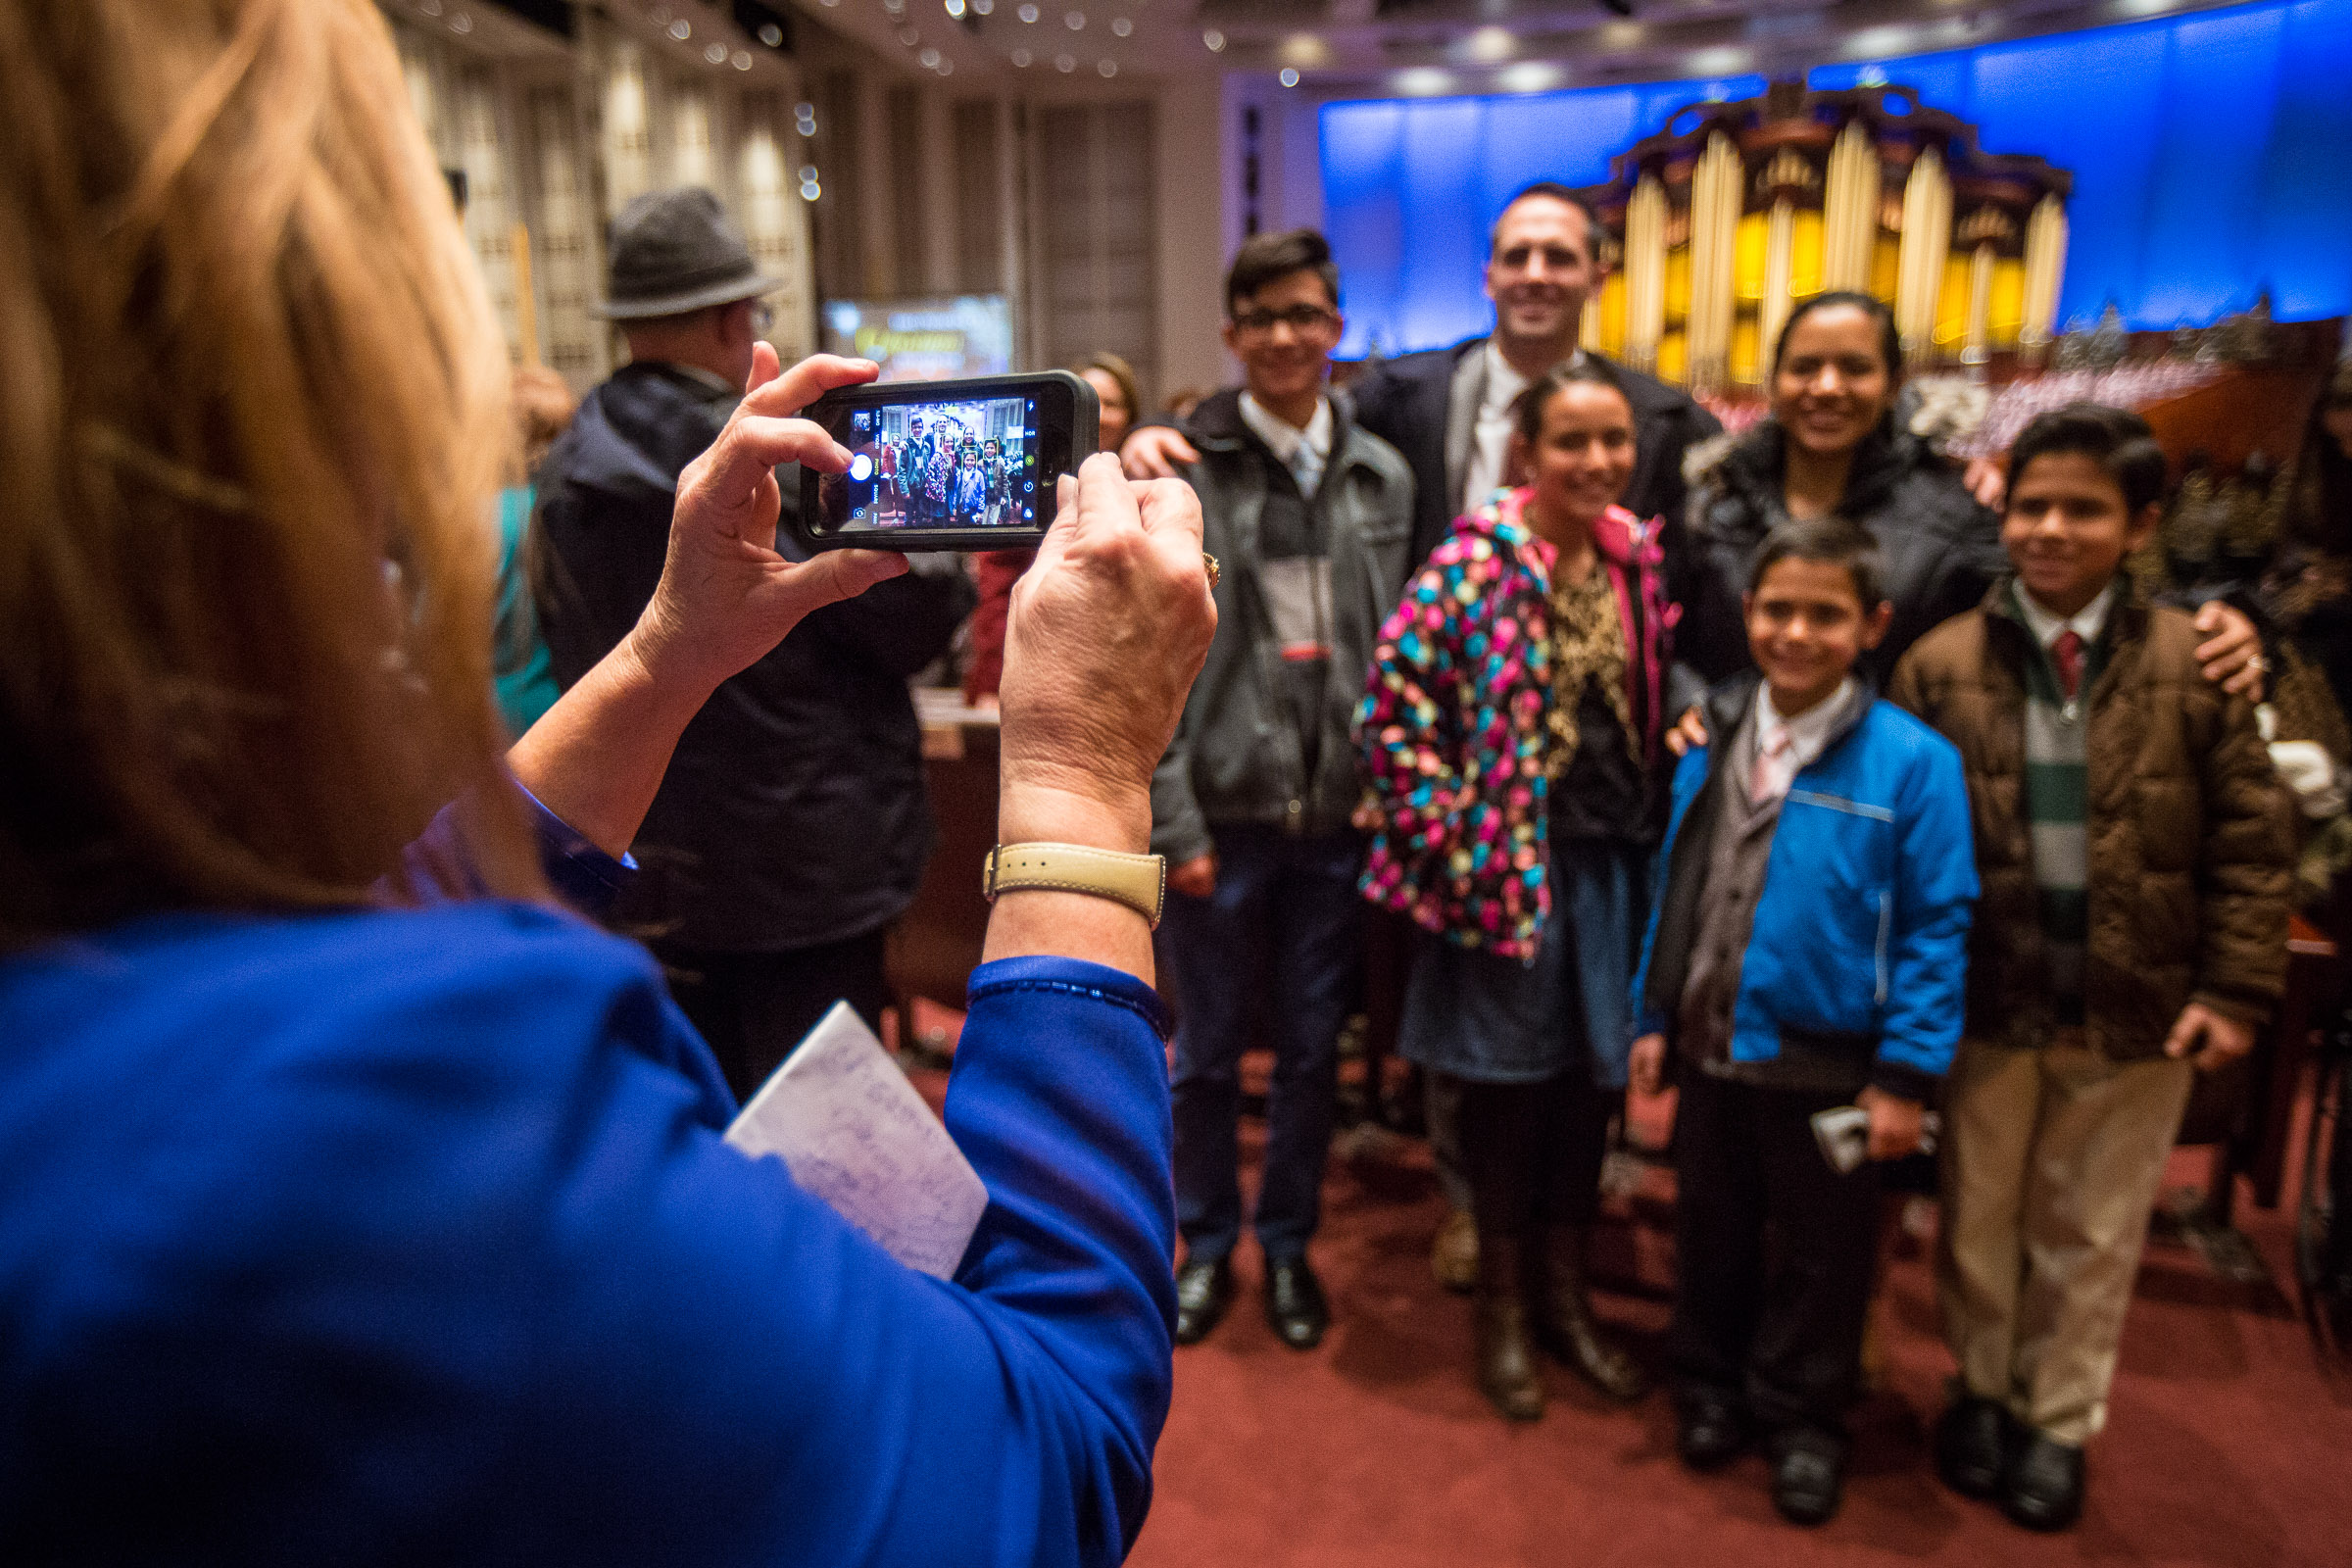 People get their picture taken after the First Presidency's Christmas Devotional in the Conference Center in Salt Lake City on Sunday, Dec. 2, 2018.